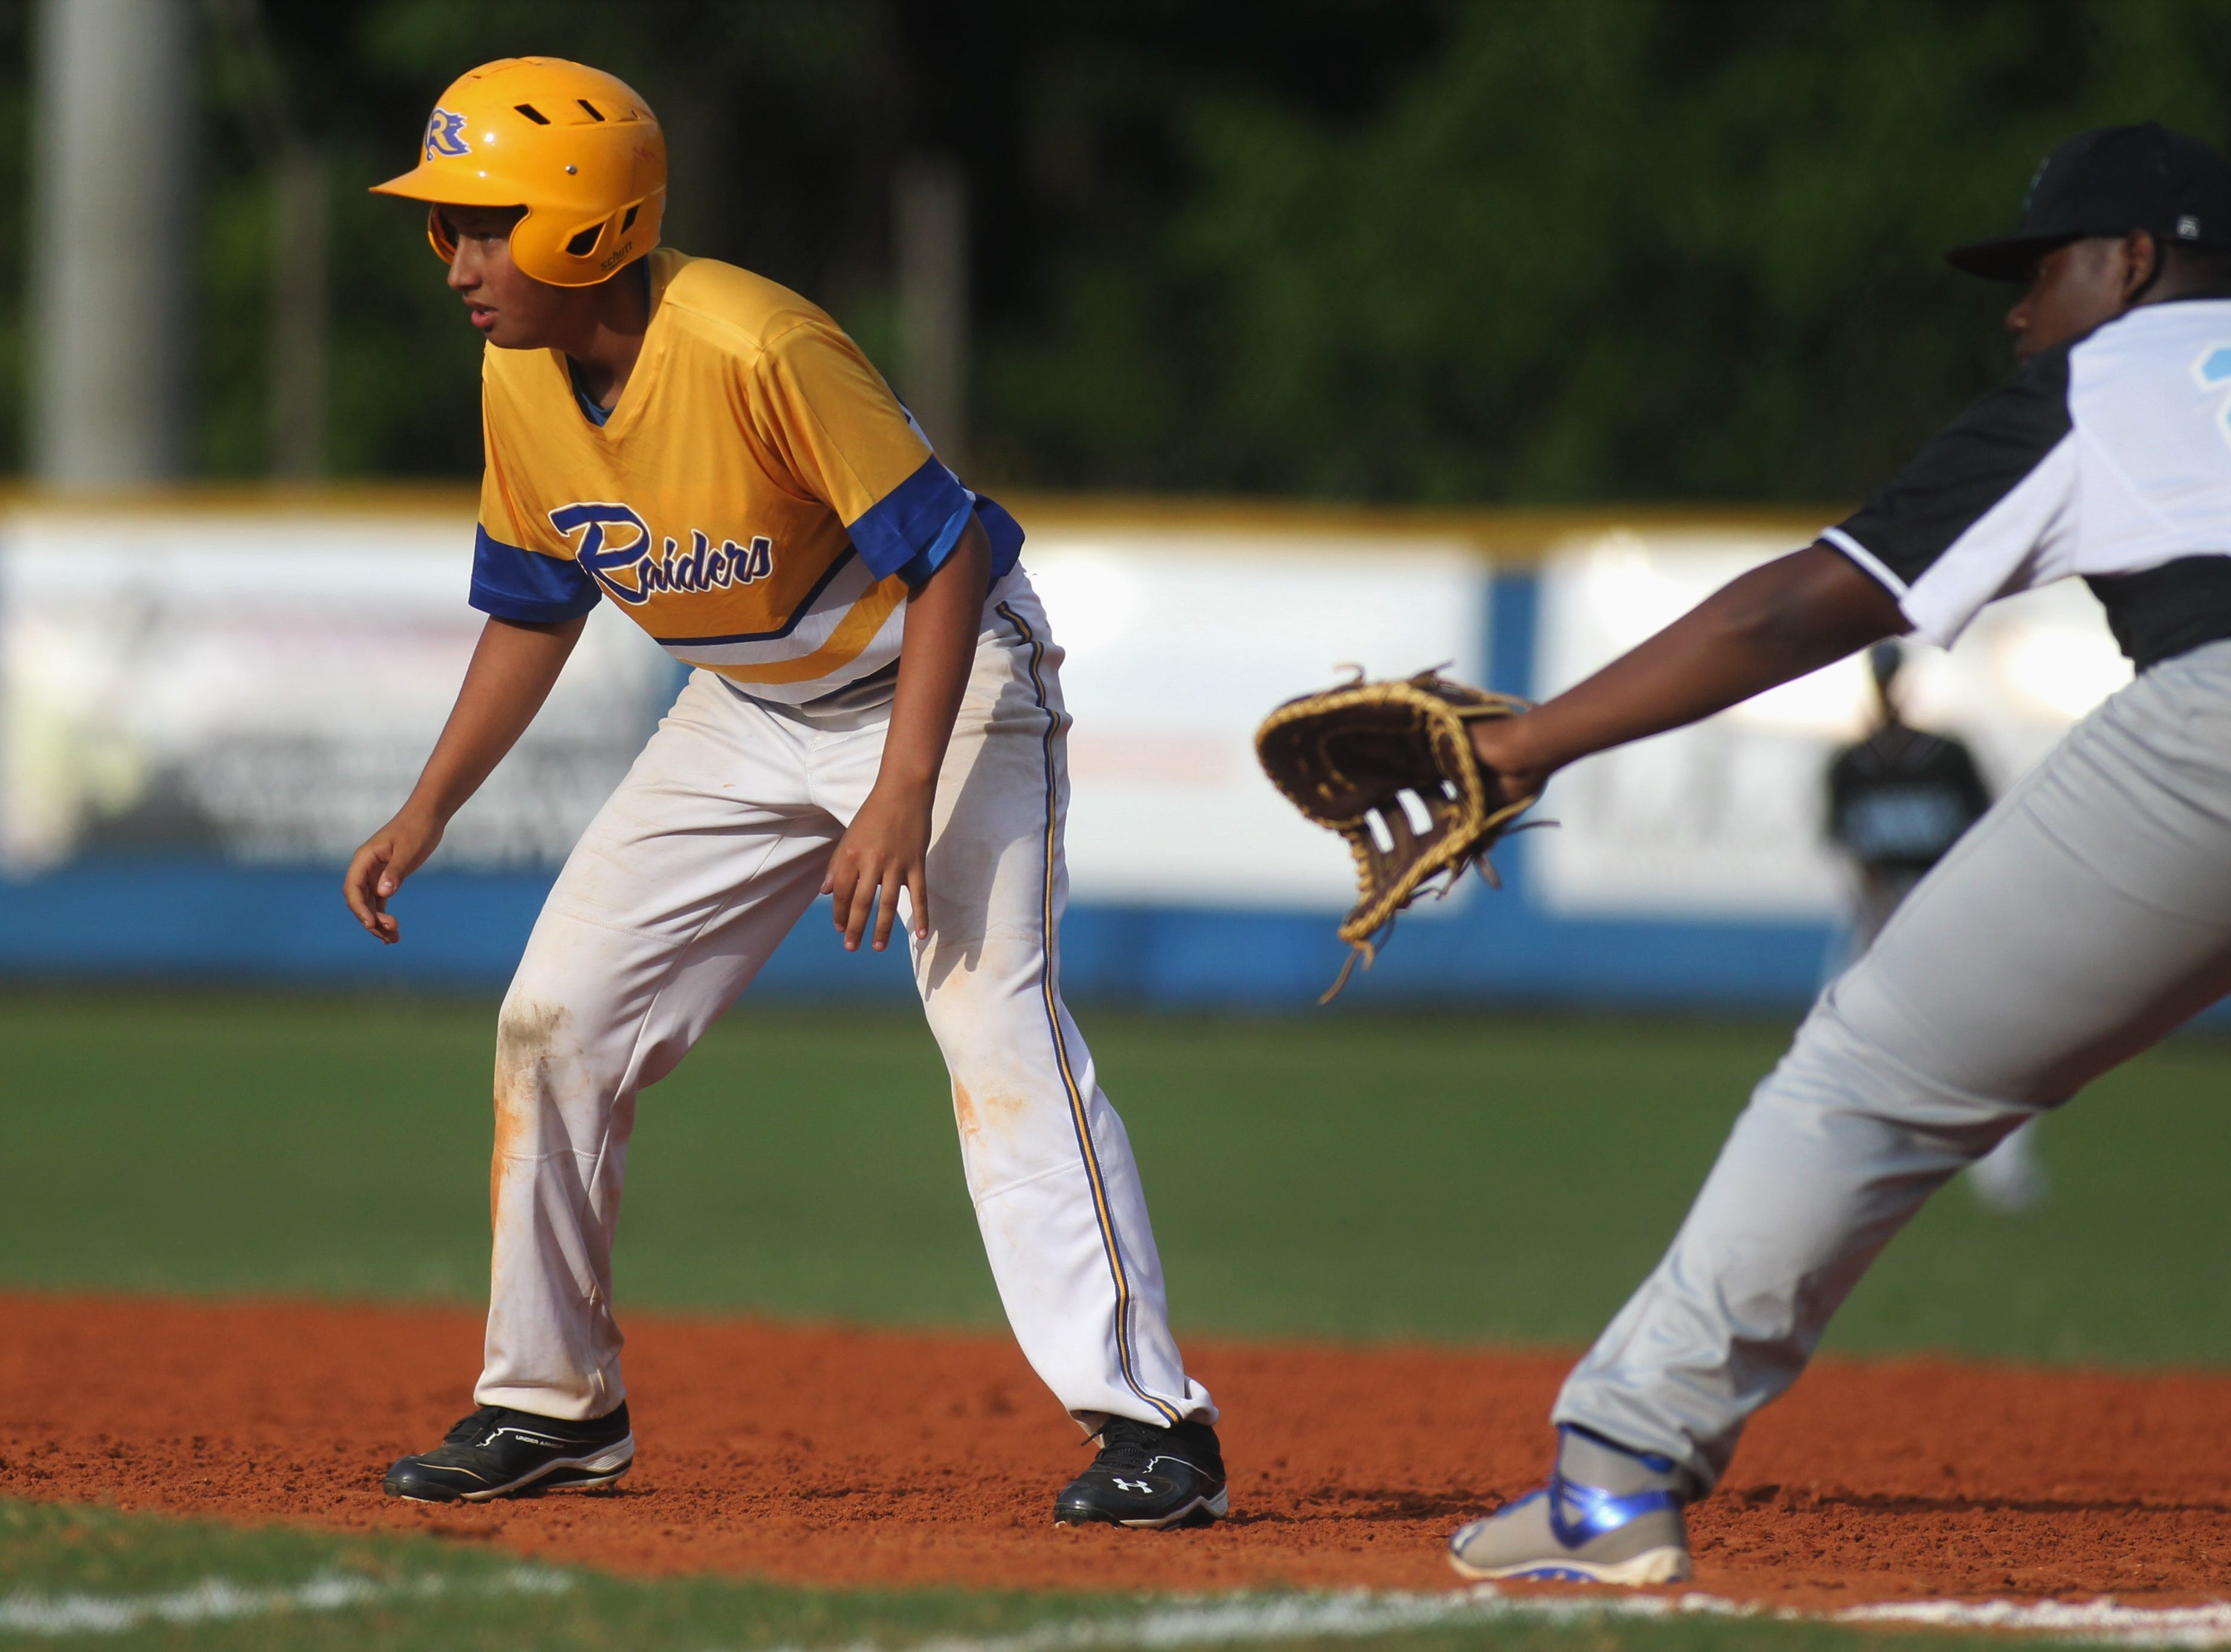 Rickards junior Dylan Butterfield leads off first as Rickards beat Gadsden County 18-0 in three innings on Friday, April 12, 2019.